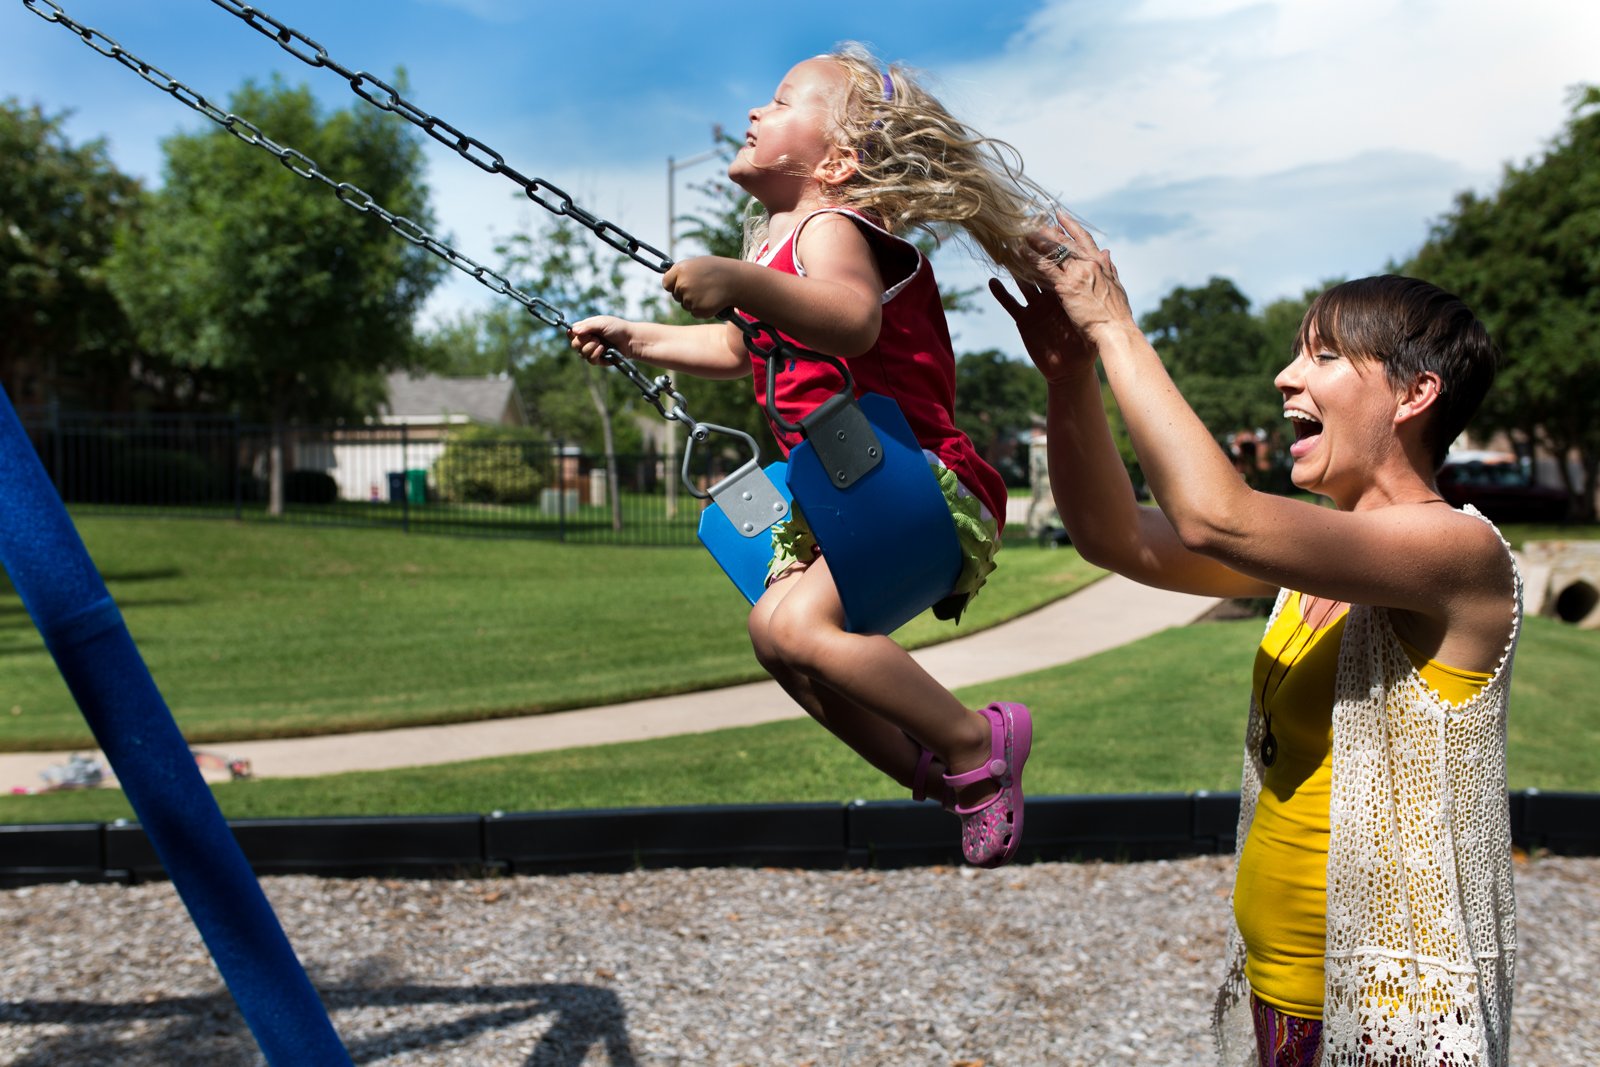 Lawren Rose Photography captures a bright photo of a mom pushing her daughter on a swing set in Denton Texas